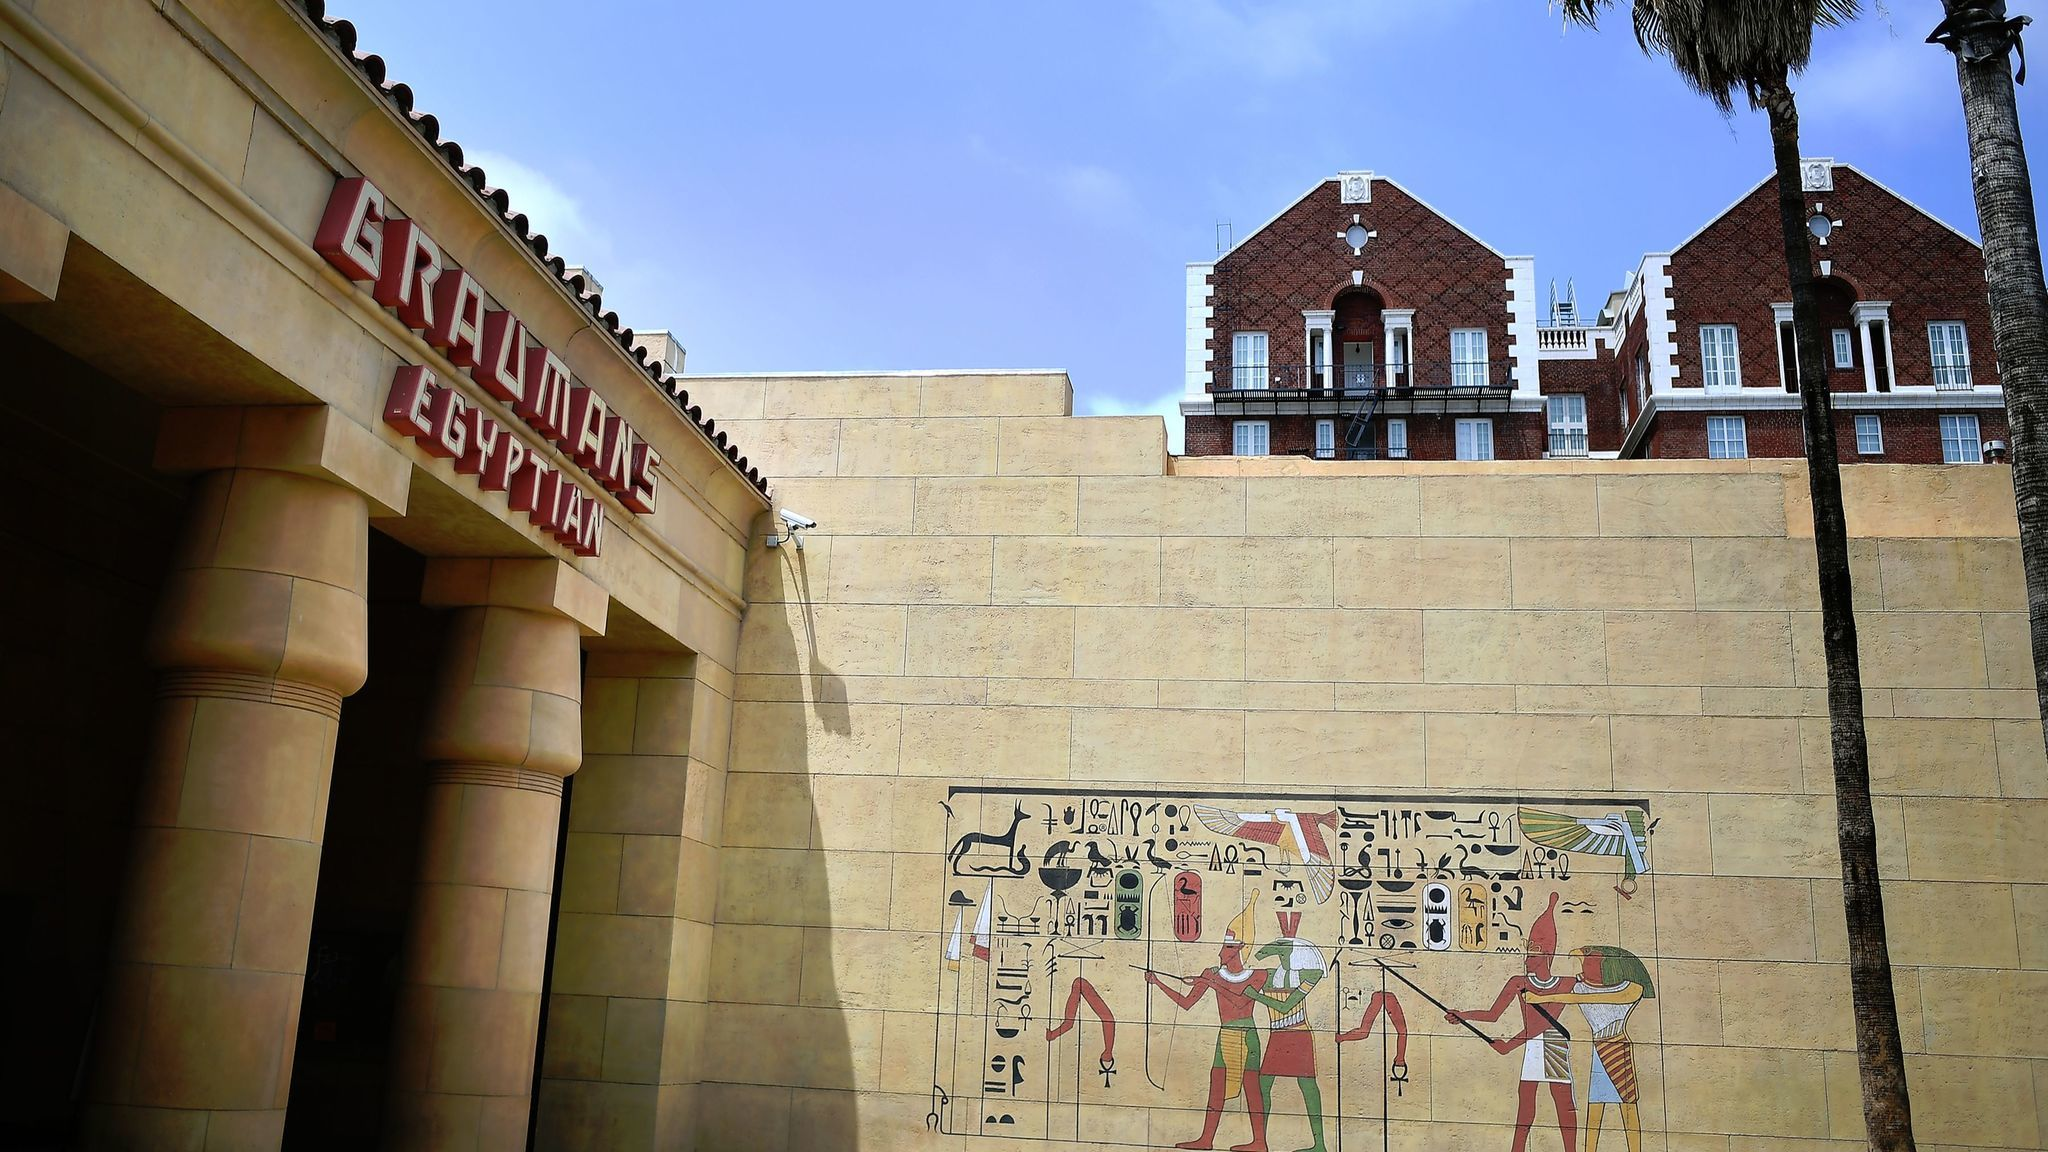 The Egyptian Theater in Hollywood.